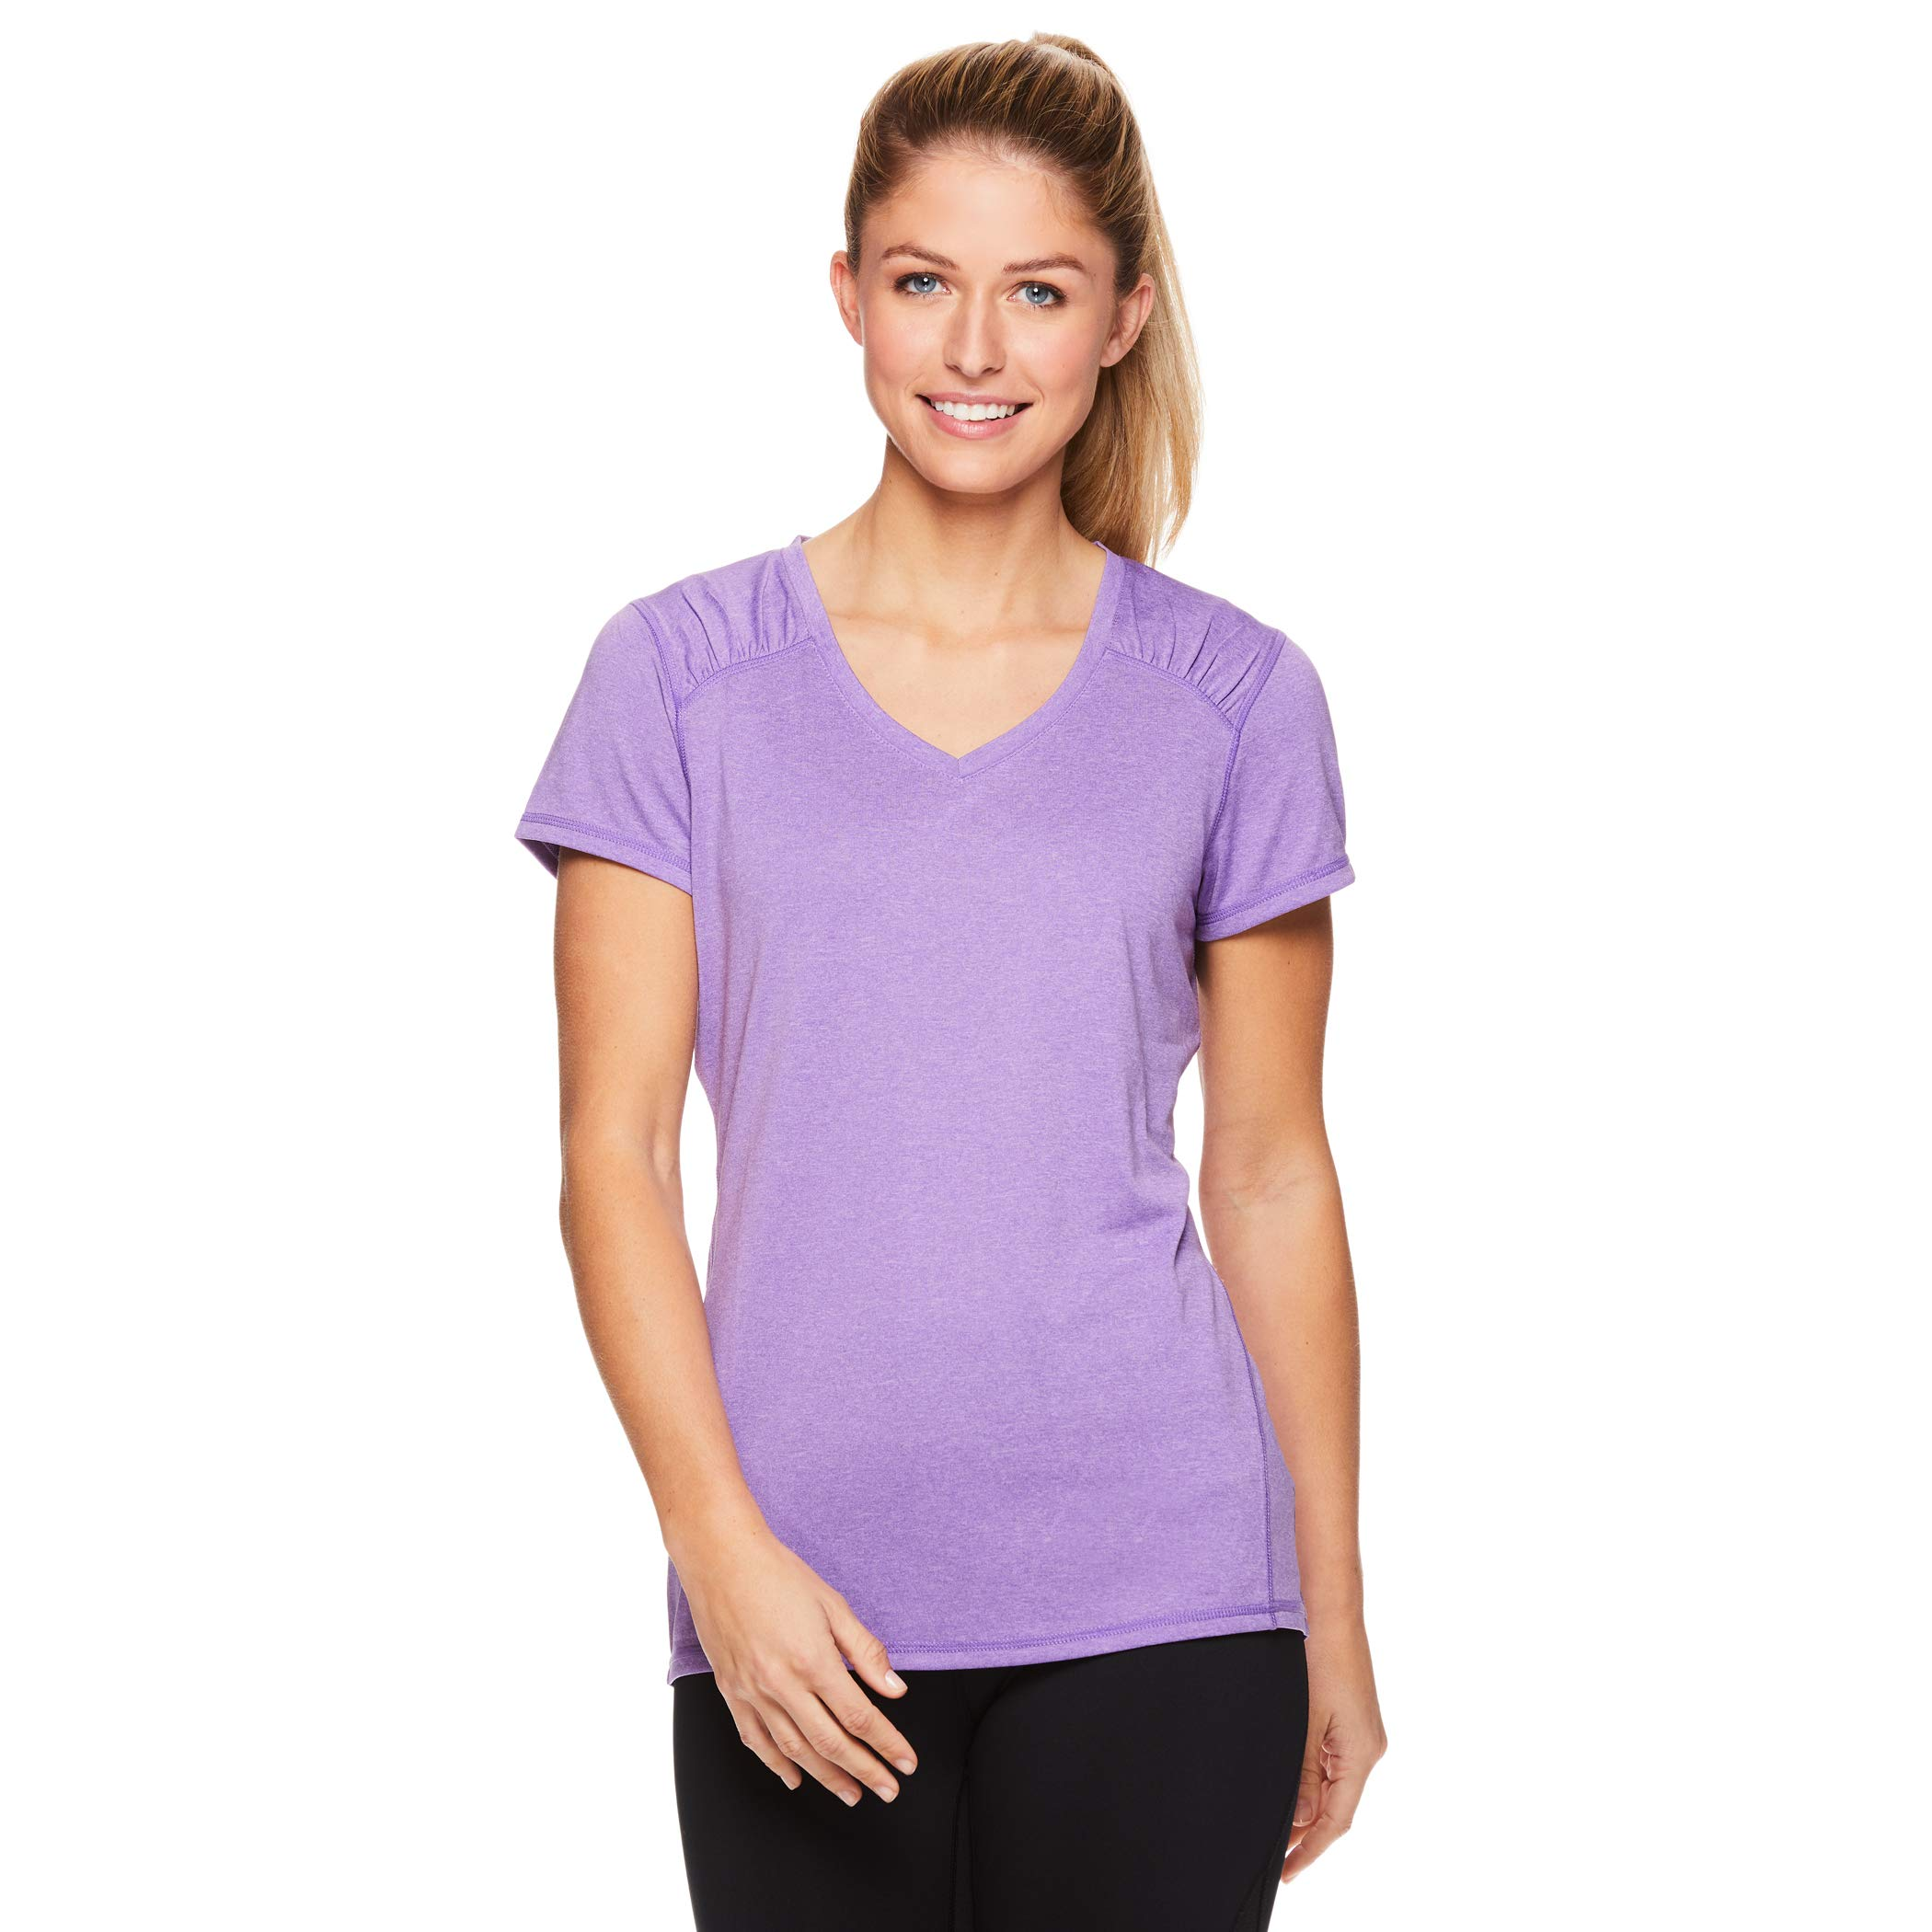 HEAD Women's Perfect Match Short Sleeve Workout T-Shirt - Performance V-Neck Activewear Top - Chive Blossom Heather, Small